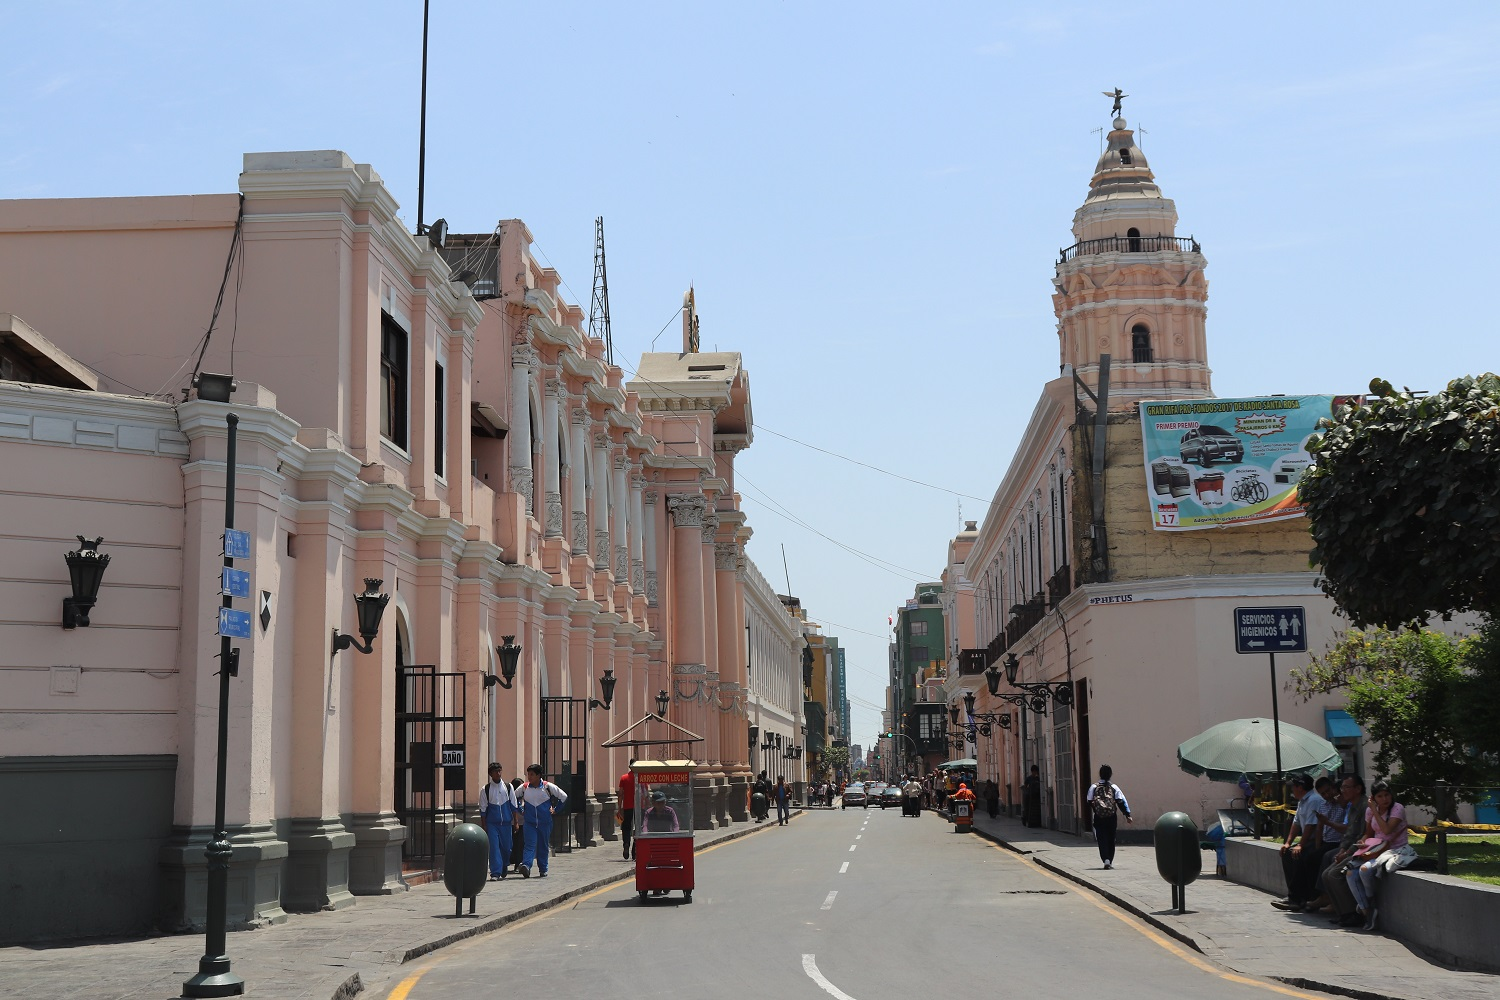 The streets of Lima